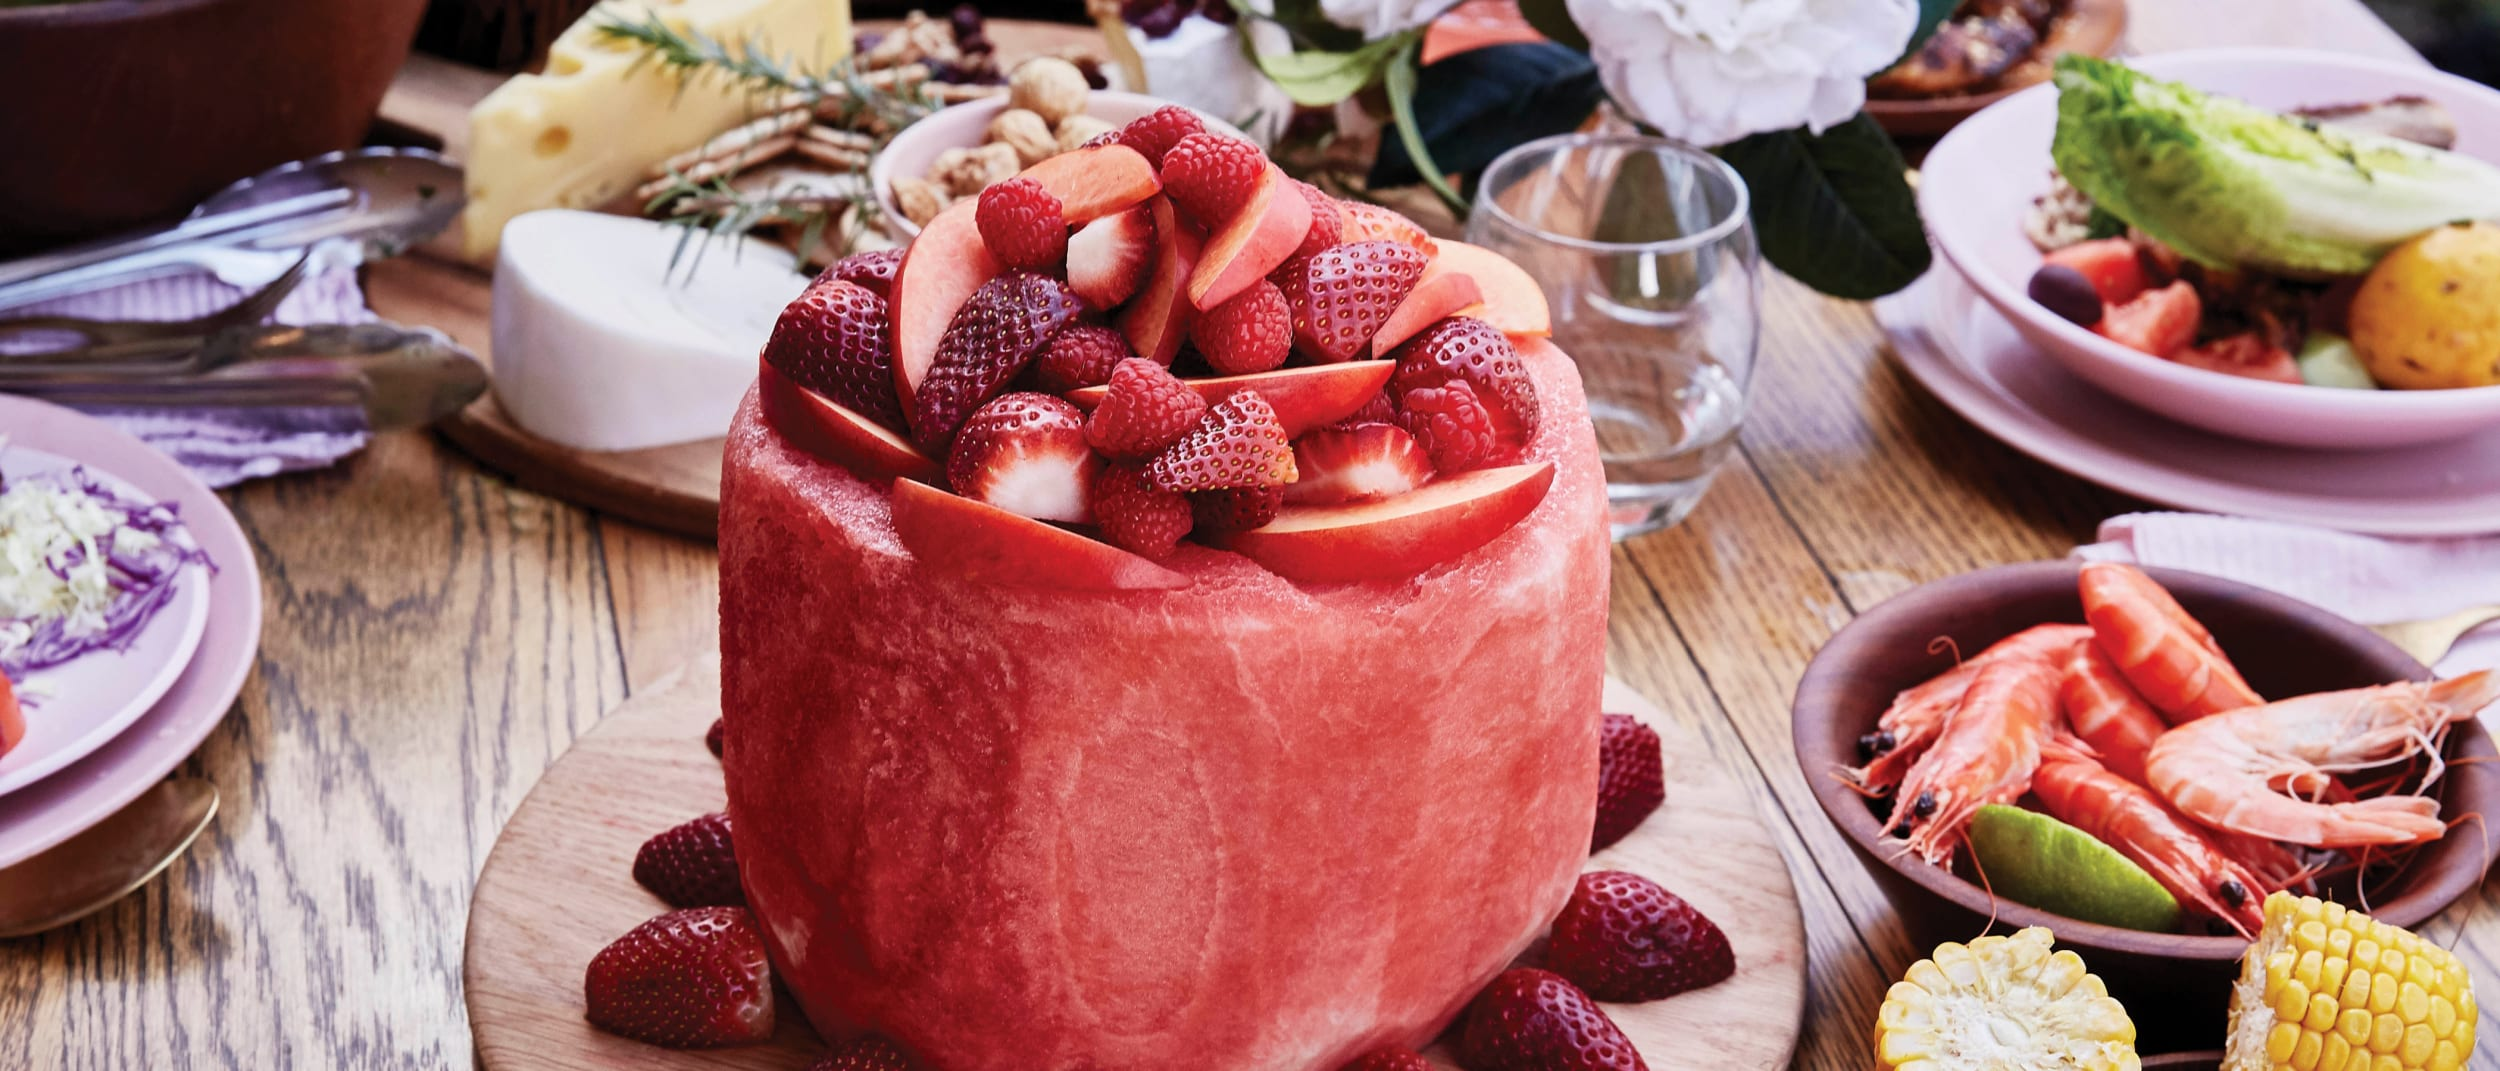 Watermelon cake recipe: the easiest cake in the world to make